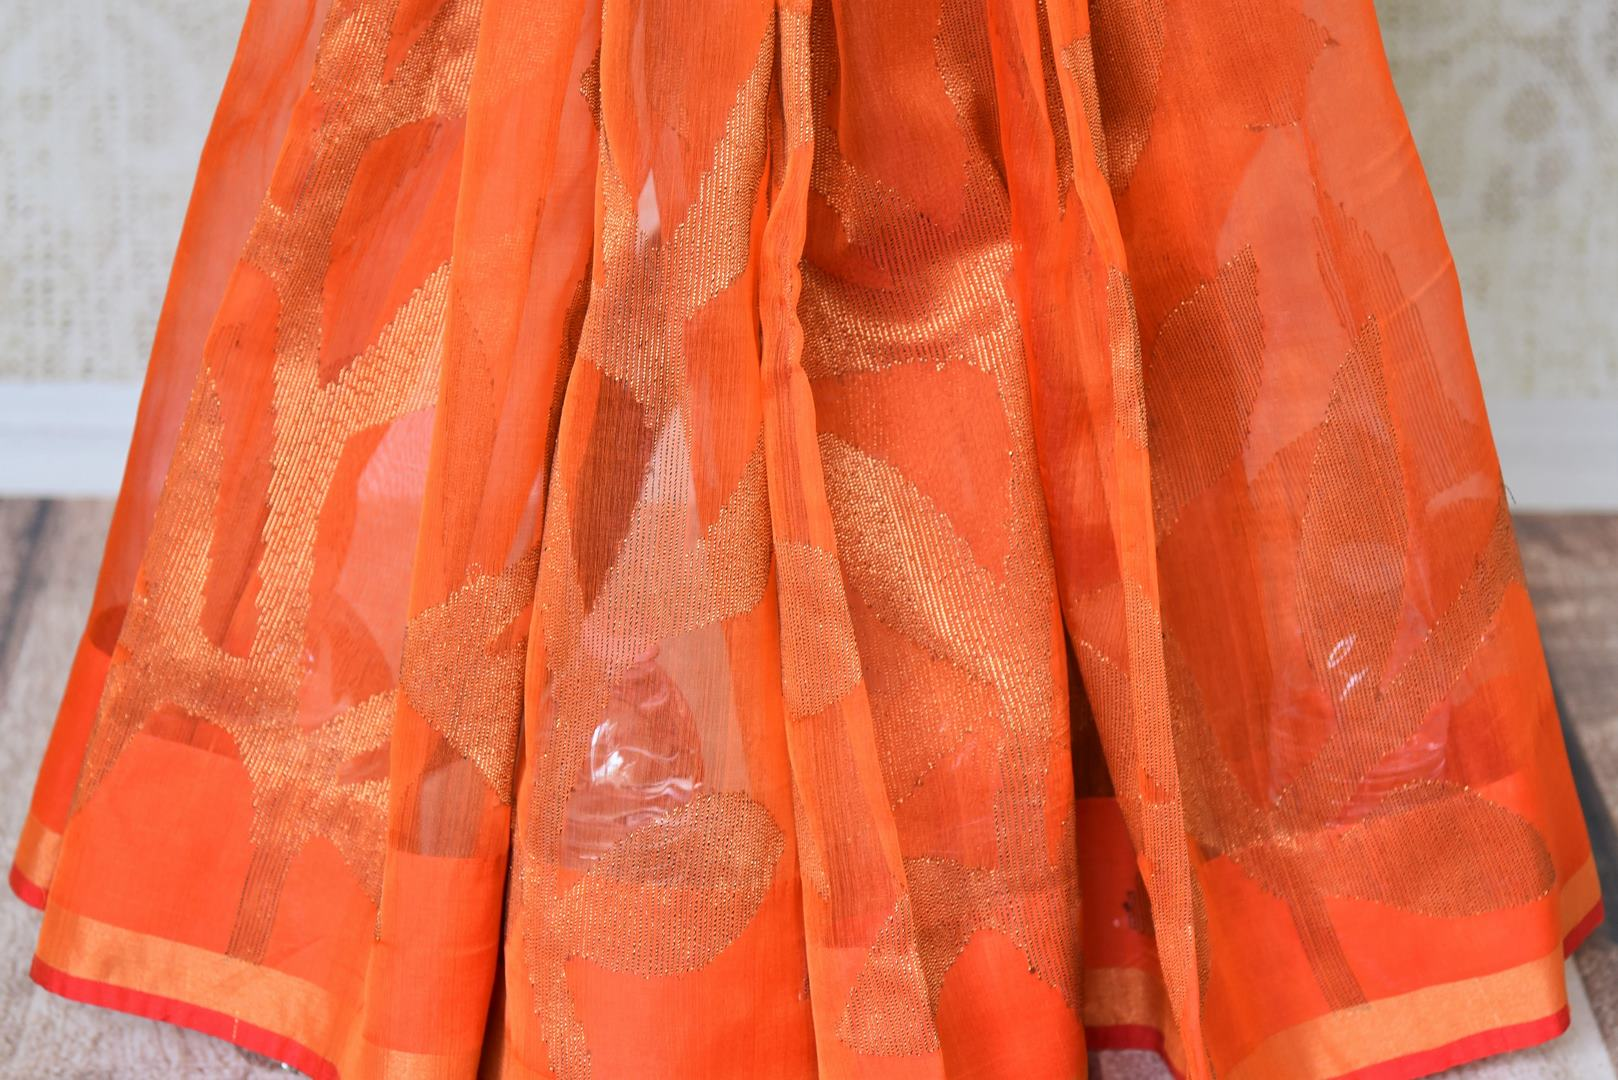 Buy orange matka silk saree online in USA with printed sari blouse. Make every occasion special with beautiful Indian designer sarees, handloom sarees, wedding saris from Pure Elegance Indian fashion store in USA. You can also browse through our website and shop online.-pleats